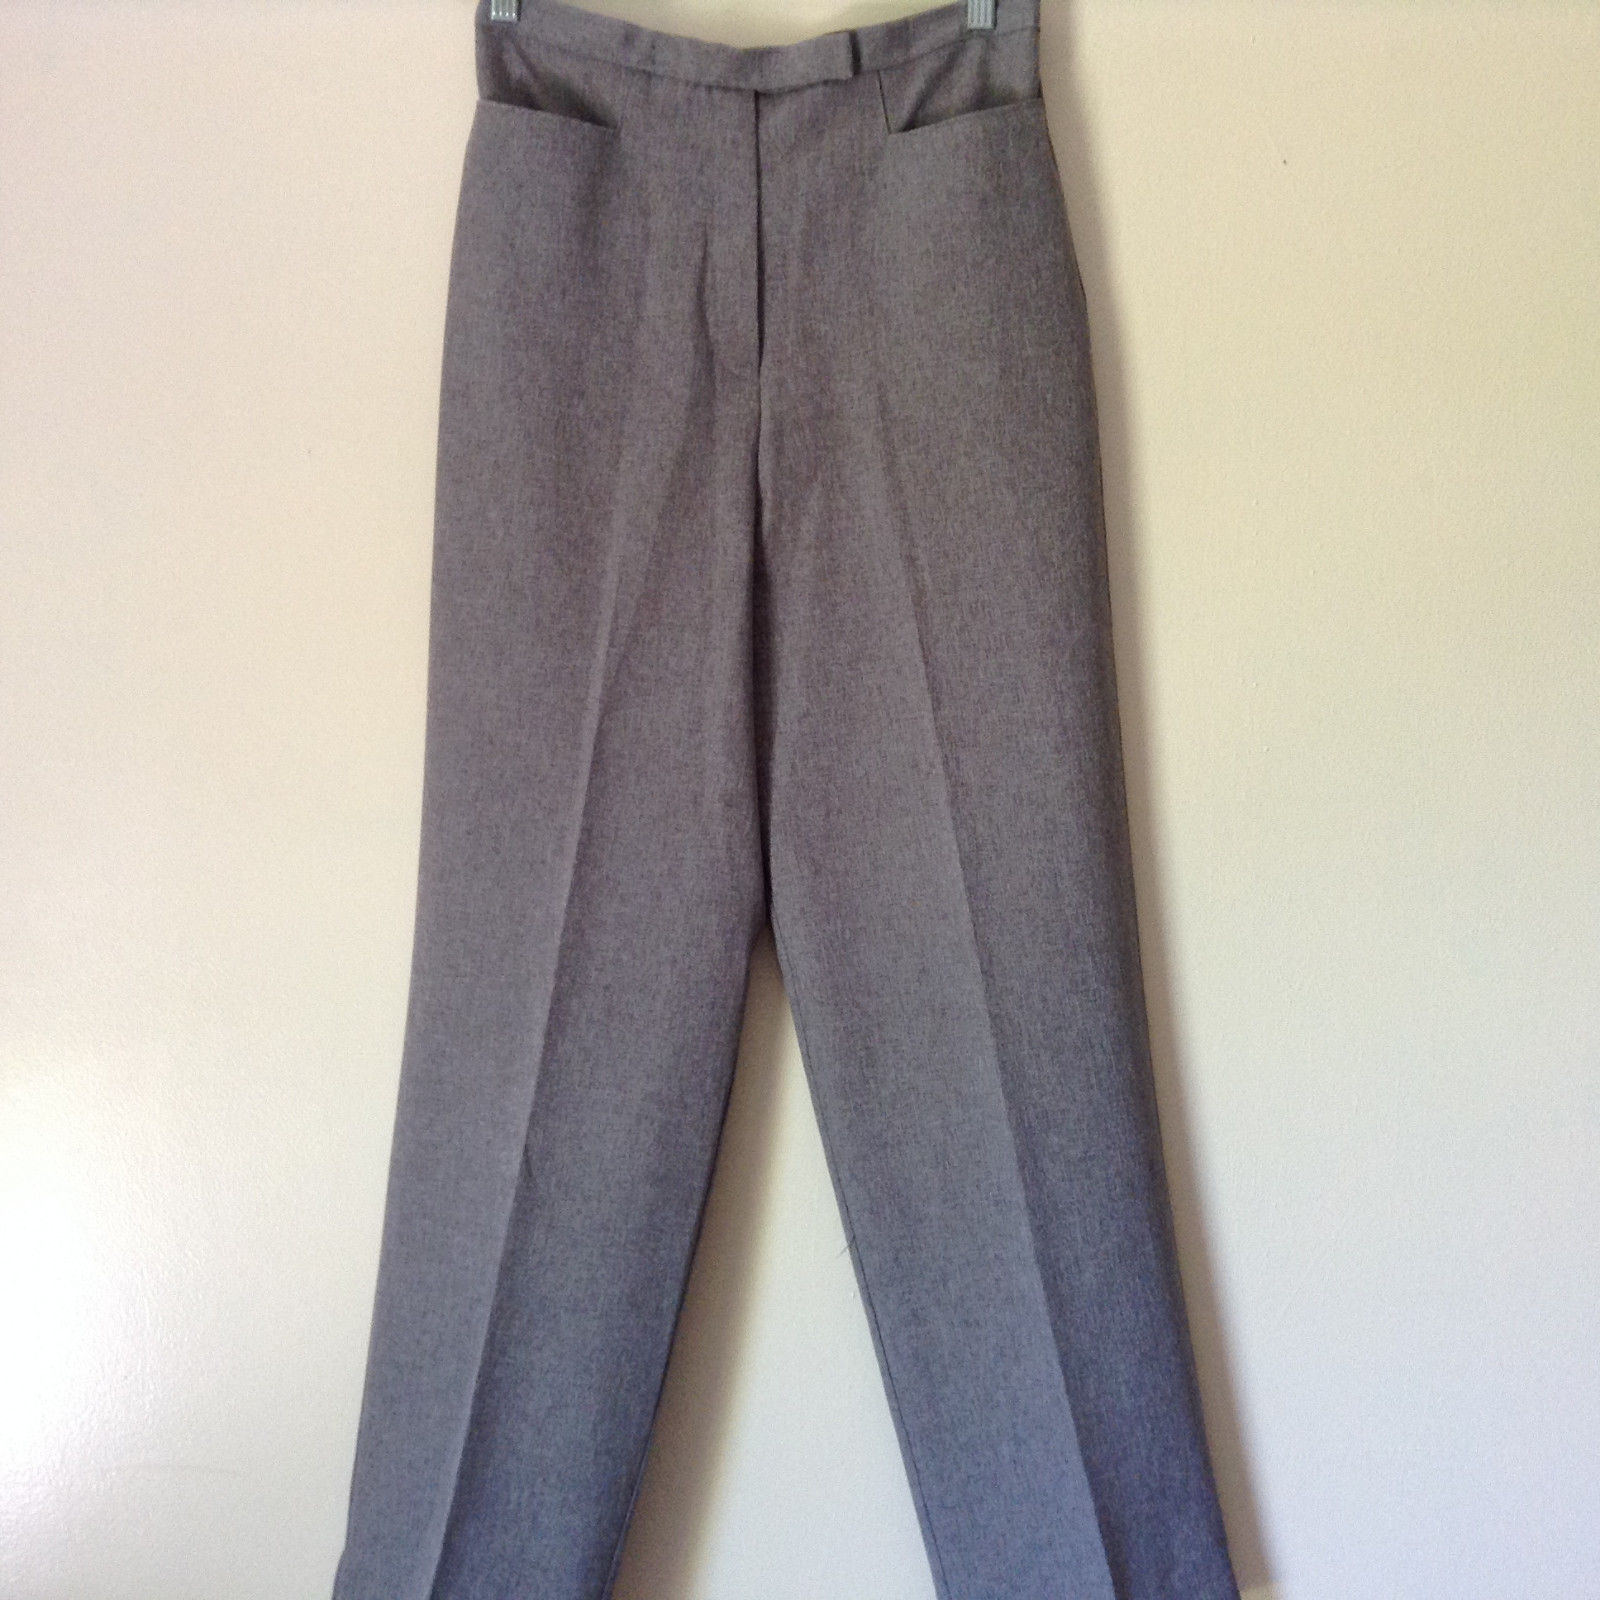 Gray Dress Pants by Levine Classics 100 Percent Polyester Size 8